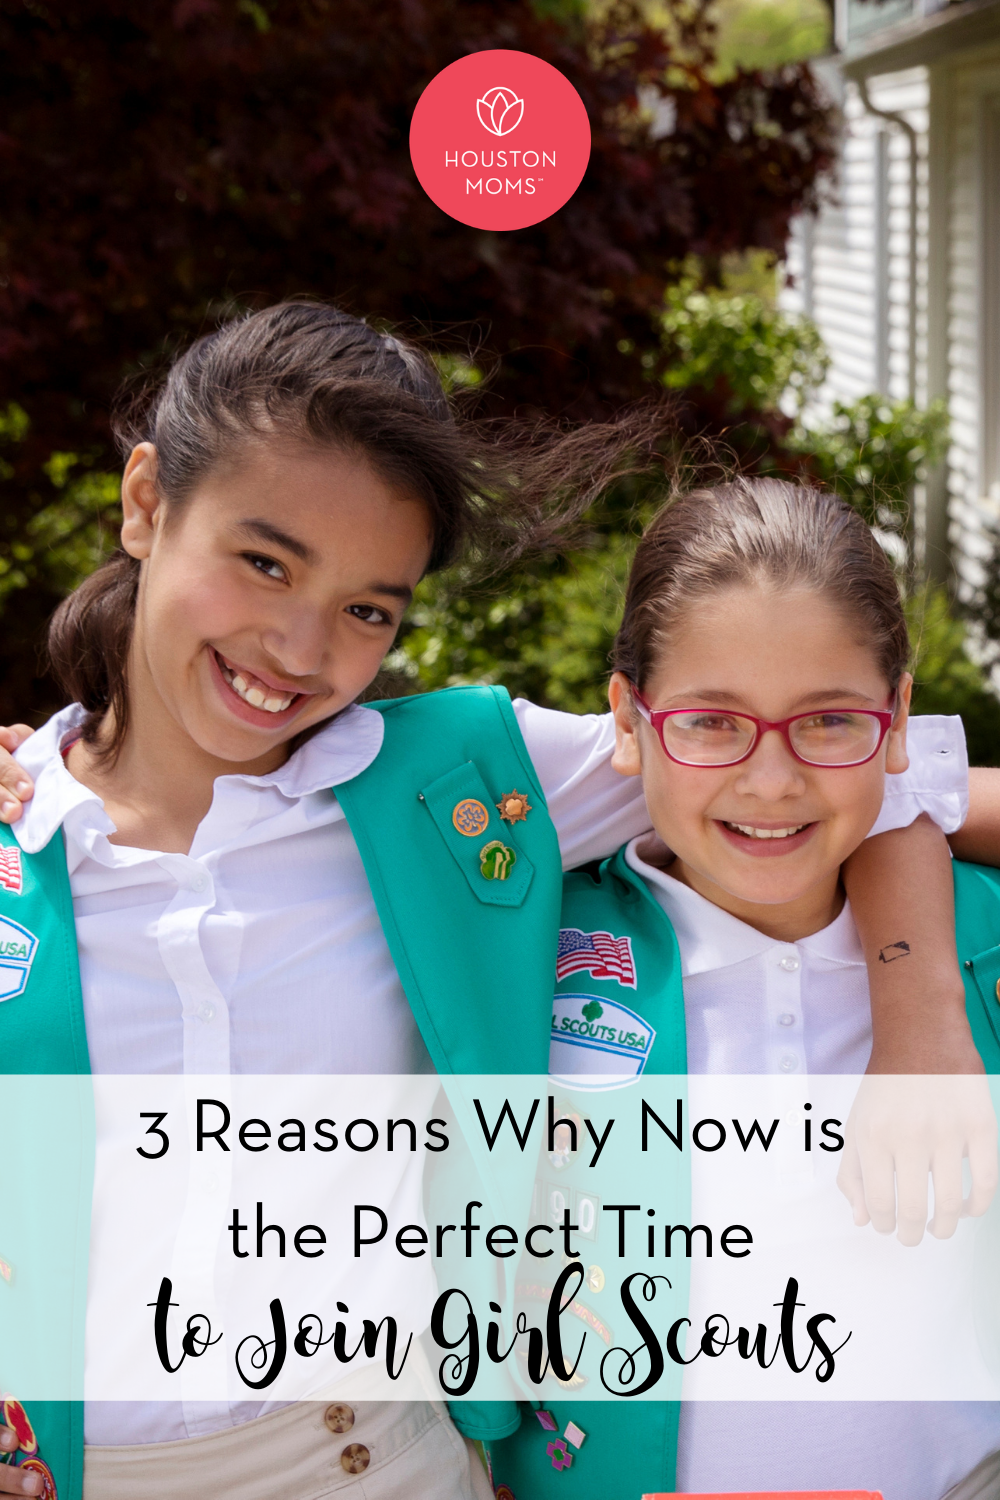 """Houston Moms """"3 Reasons Why Now is the Perfect Time to Join Girl Scouts"""" #Houstonmoms #houstonmomsblog #momsaroundhouston"""